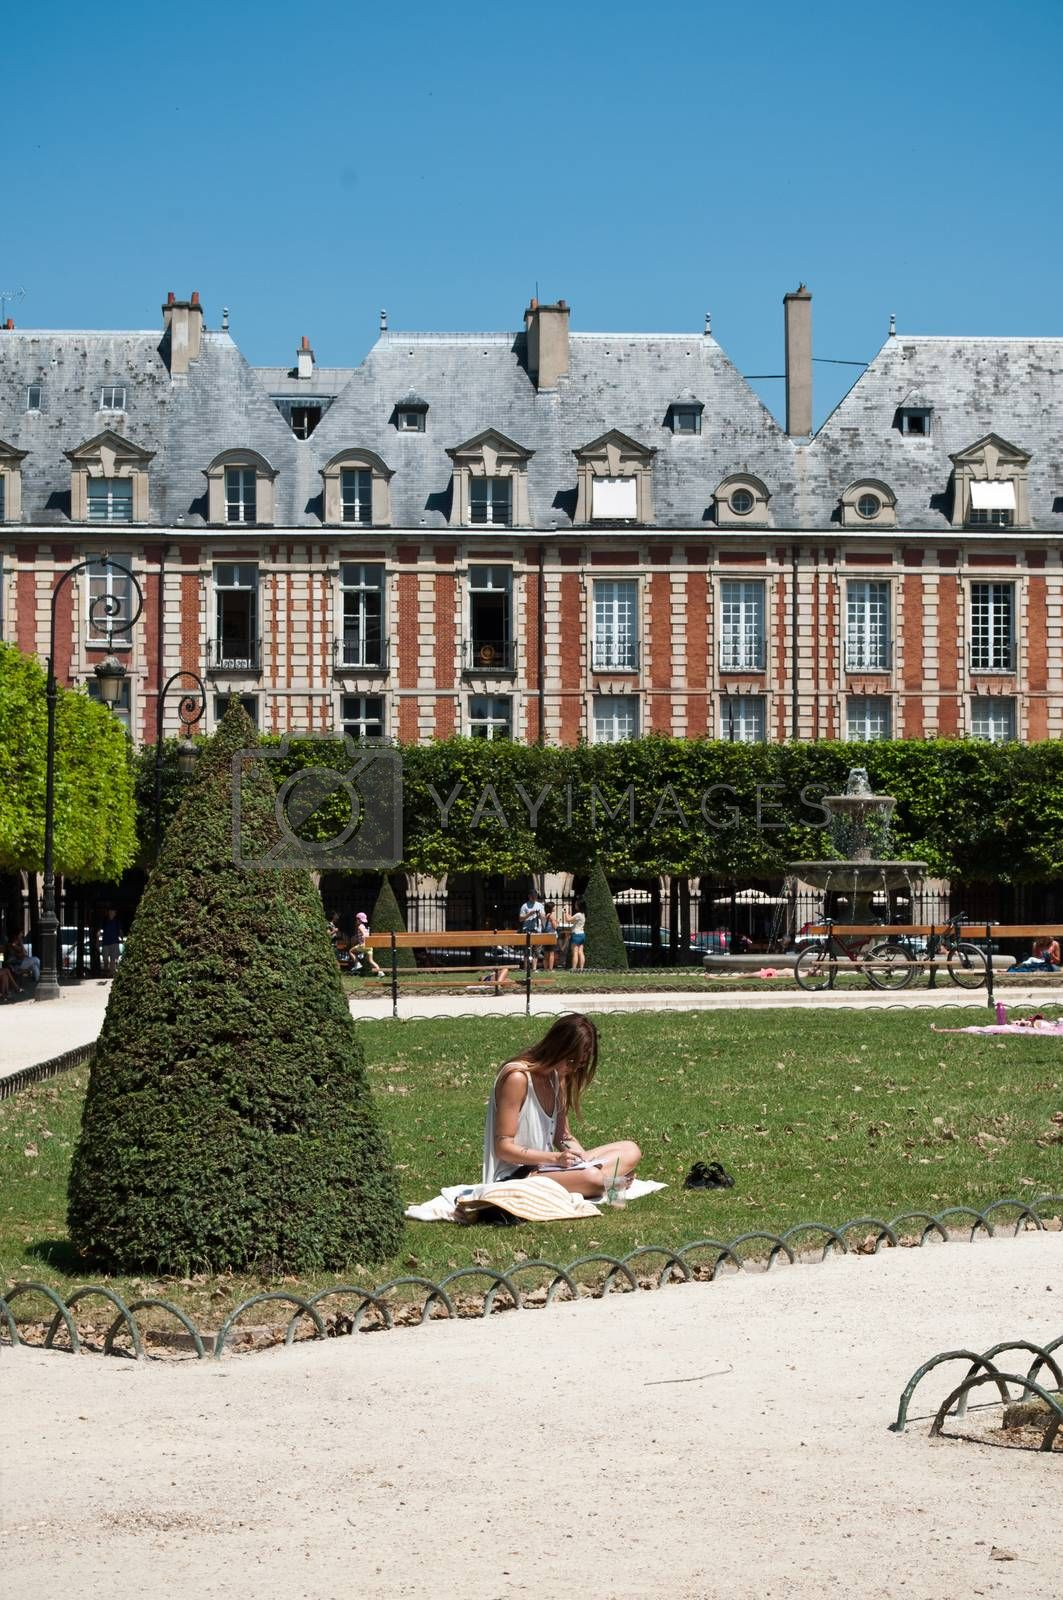 Royalty free image of Place of Vosges in Paris by NeydtStock